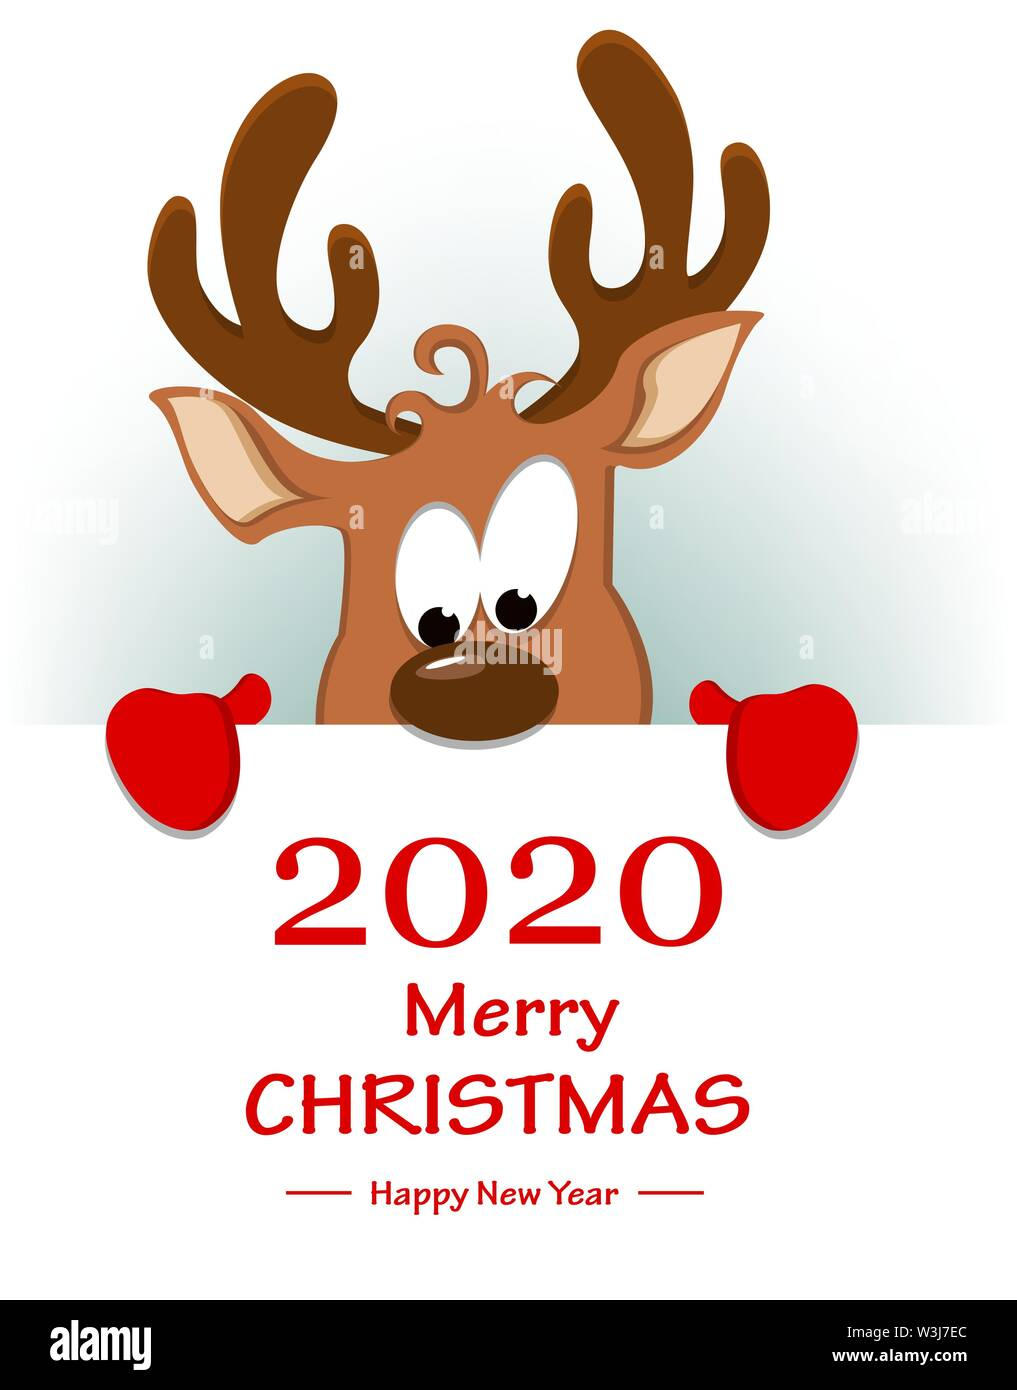 Merry Christmas and Happy New Year greeting card with funny reindeer  standing behind placard with greetings. Vector illustration Stock Vector  Image & Art - Alamy